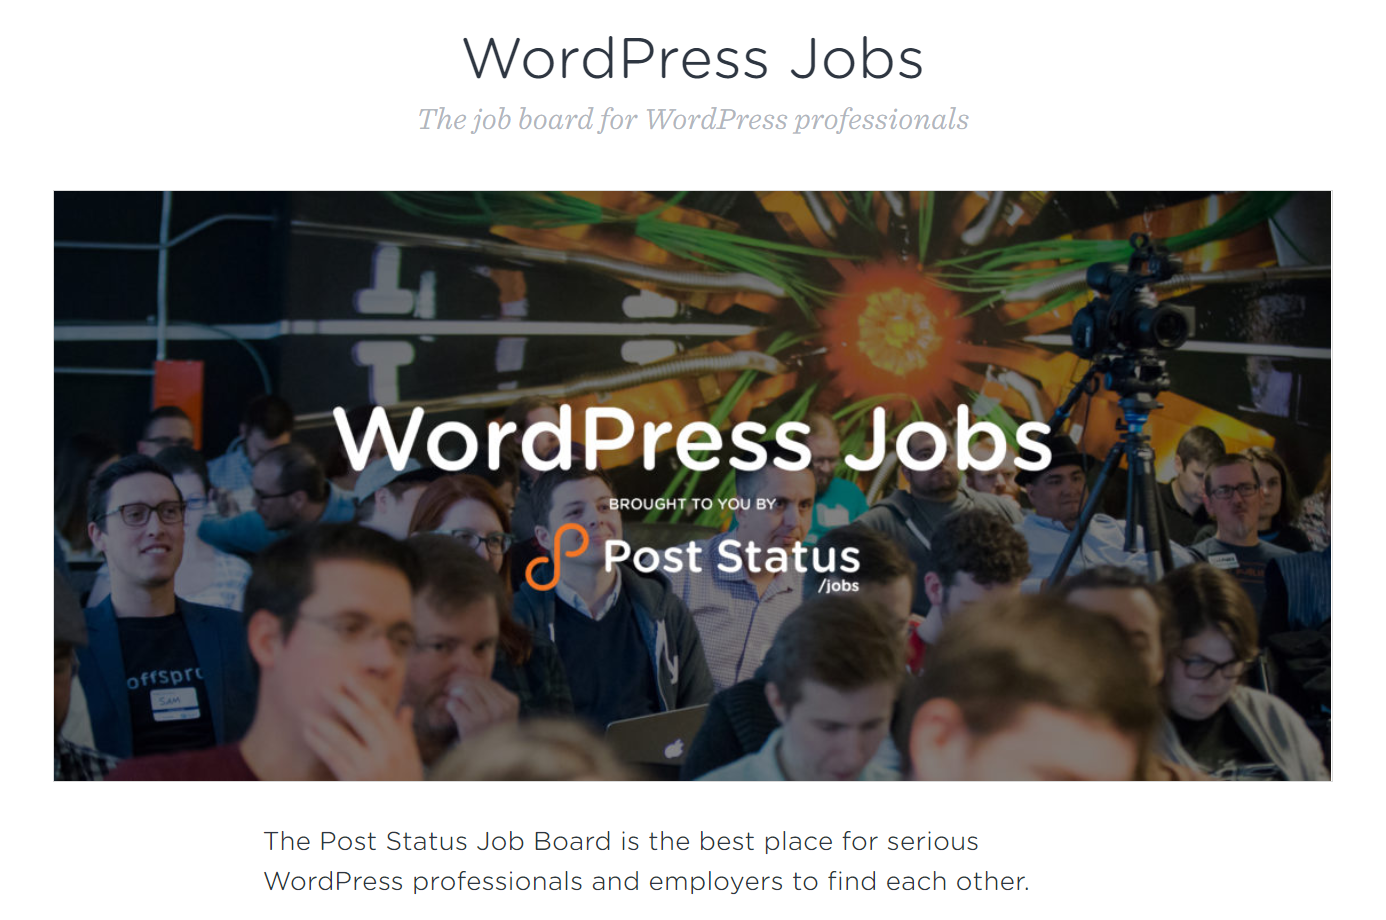 Post Status Job Board, where WordPress customer support agent positions can be found